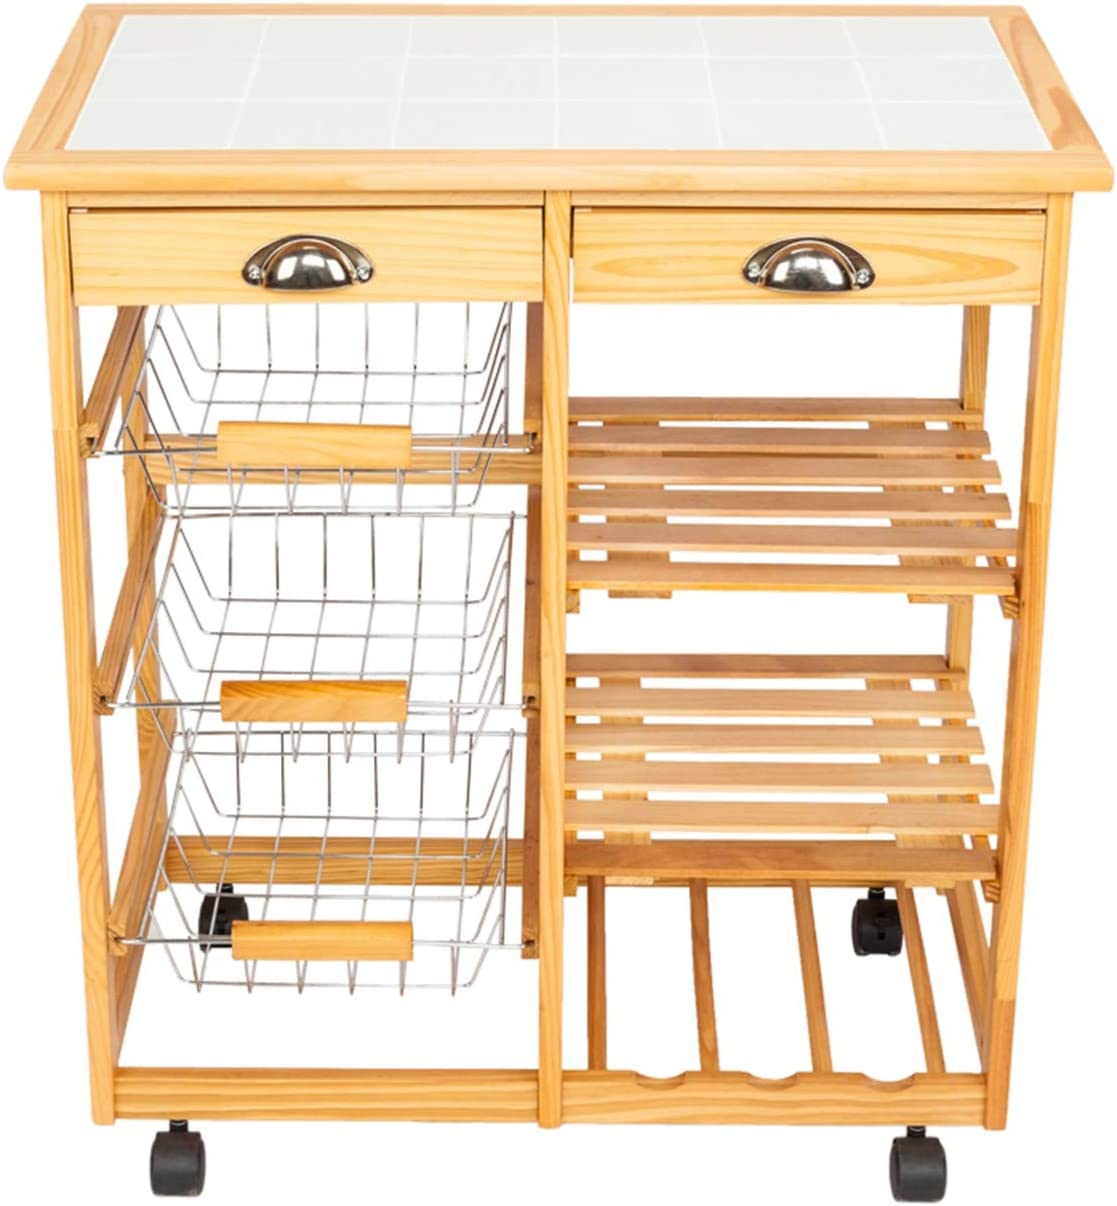 Price reduction Kitchen Dining Room Cart 2-Drawer Storage Max 65% OFF Removable Rack with